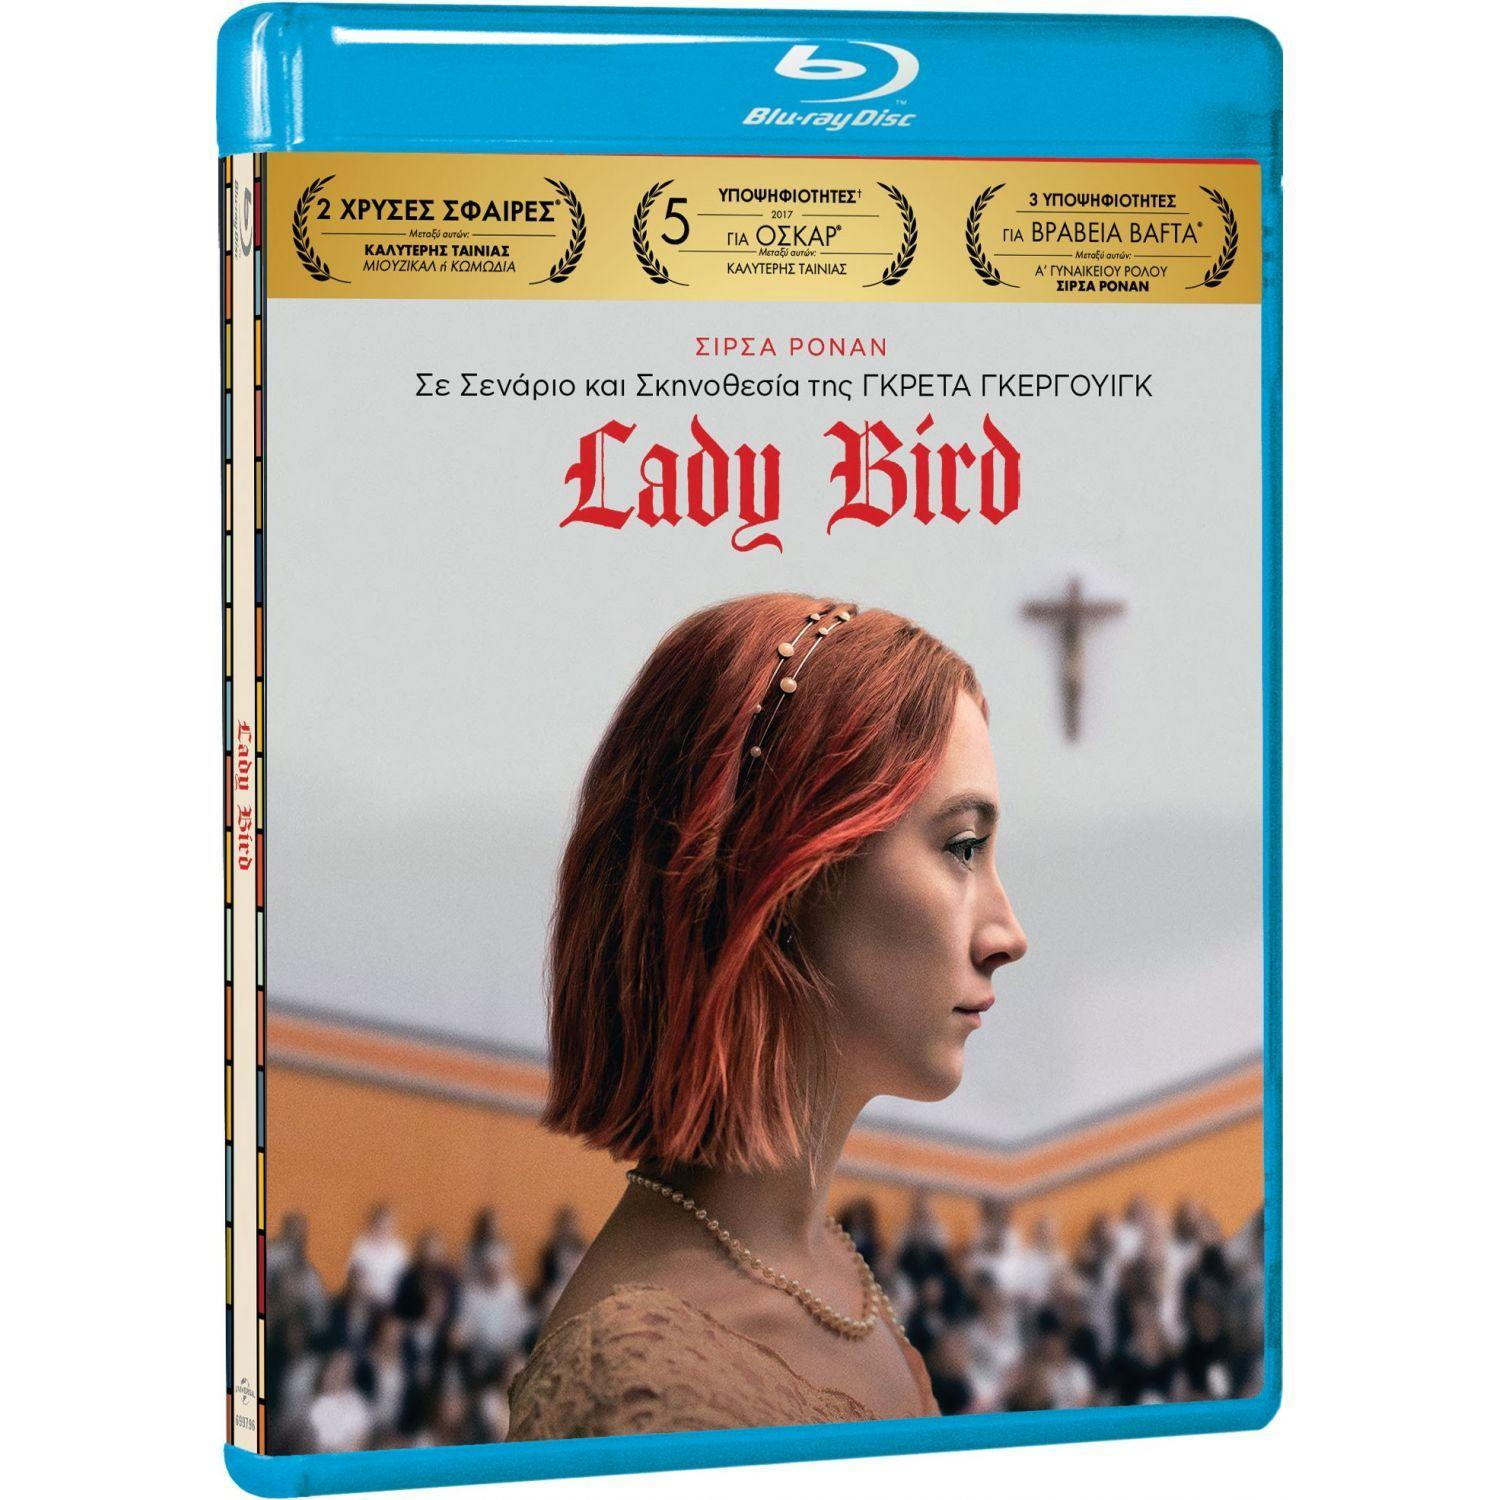 LADY BIRD (BLU RAY)